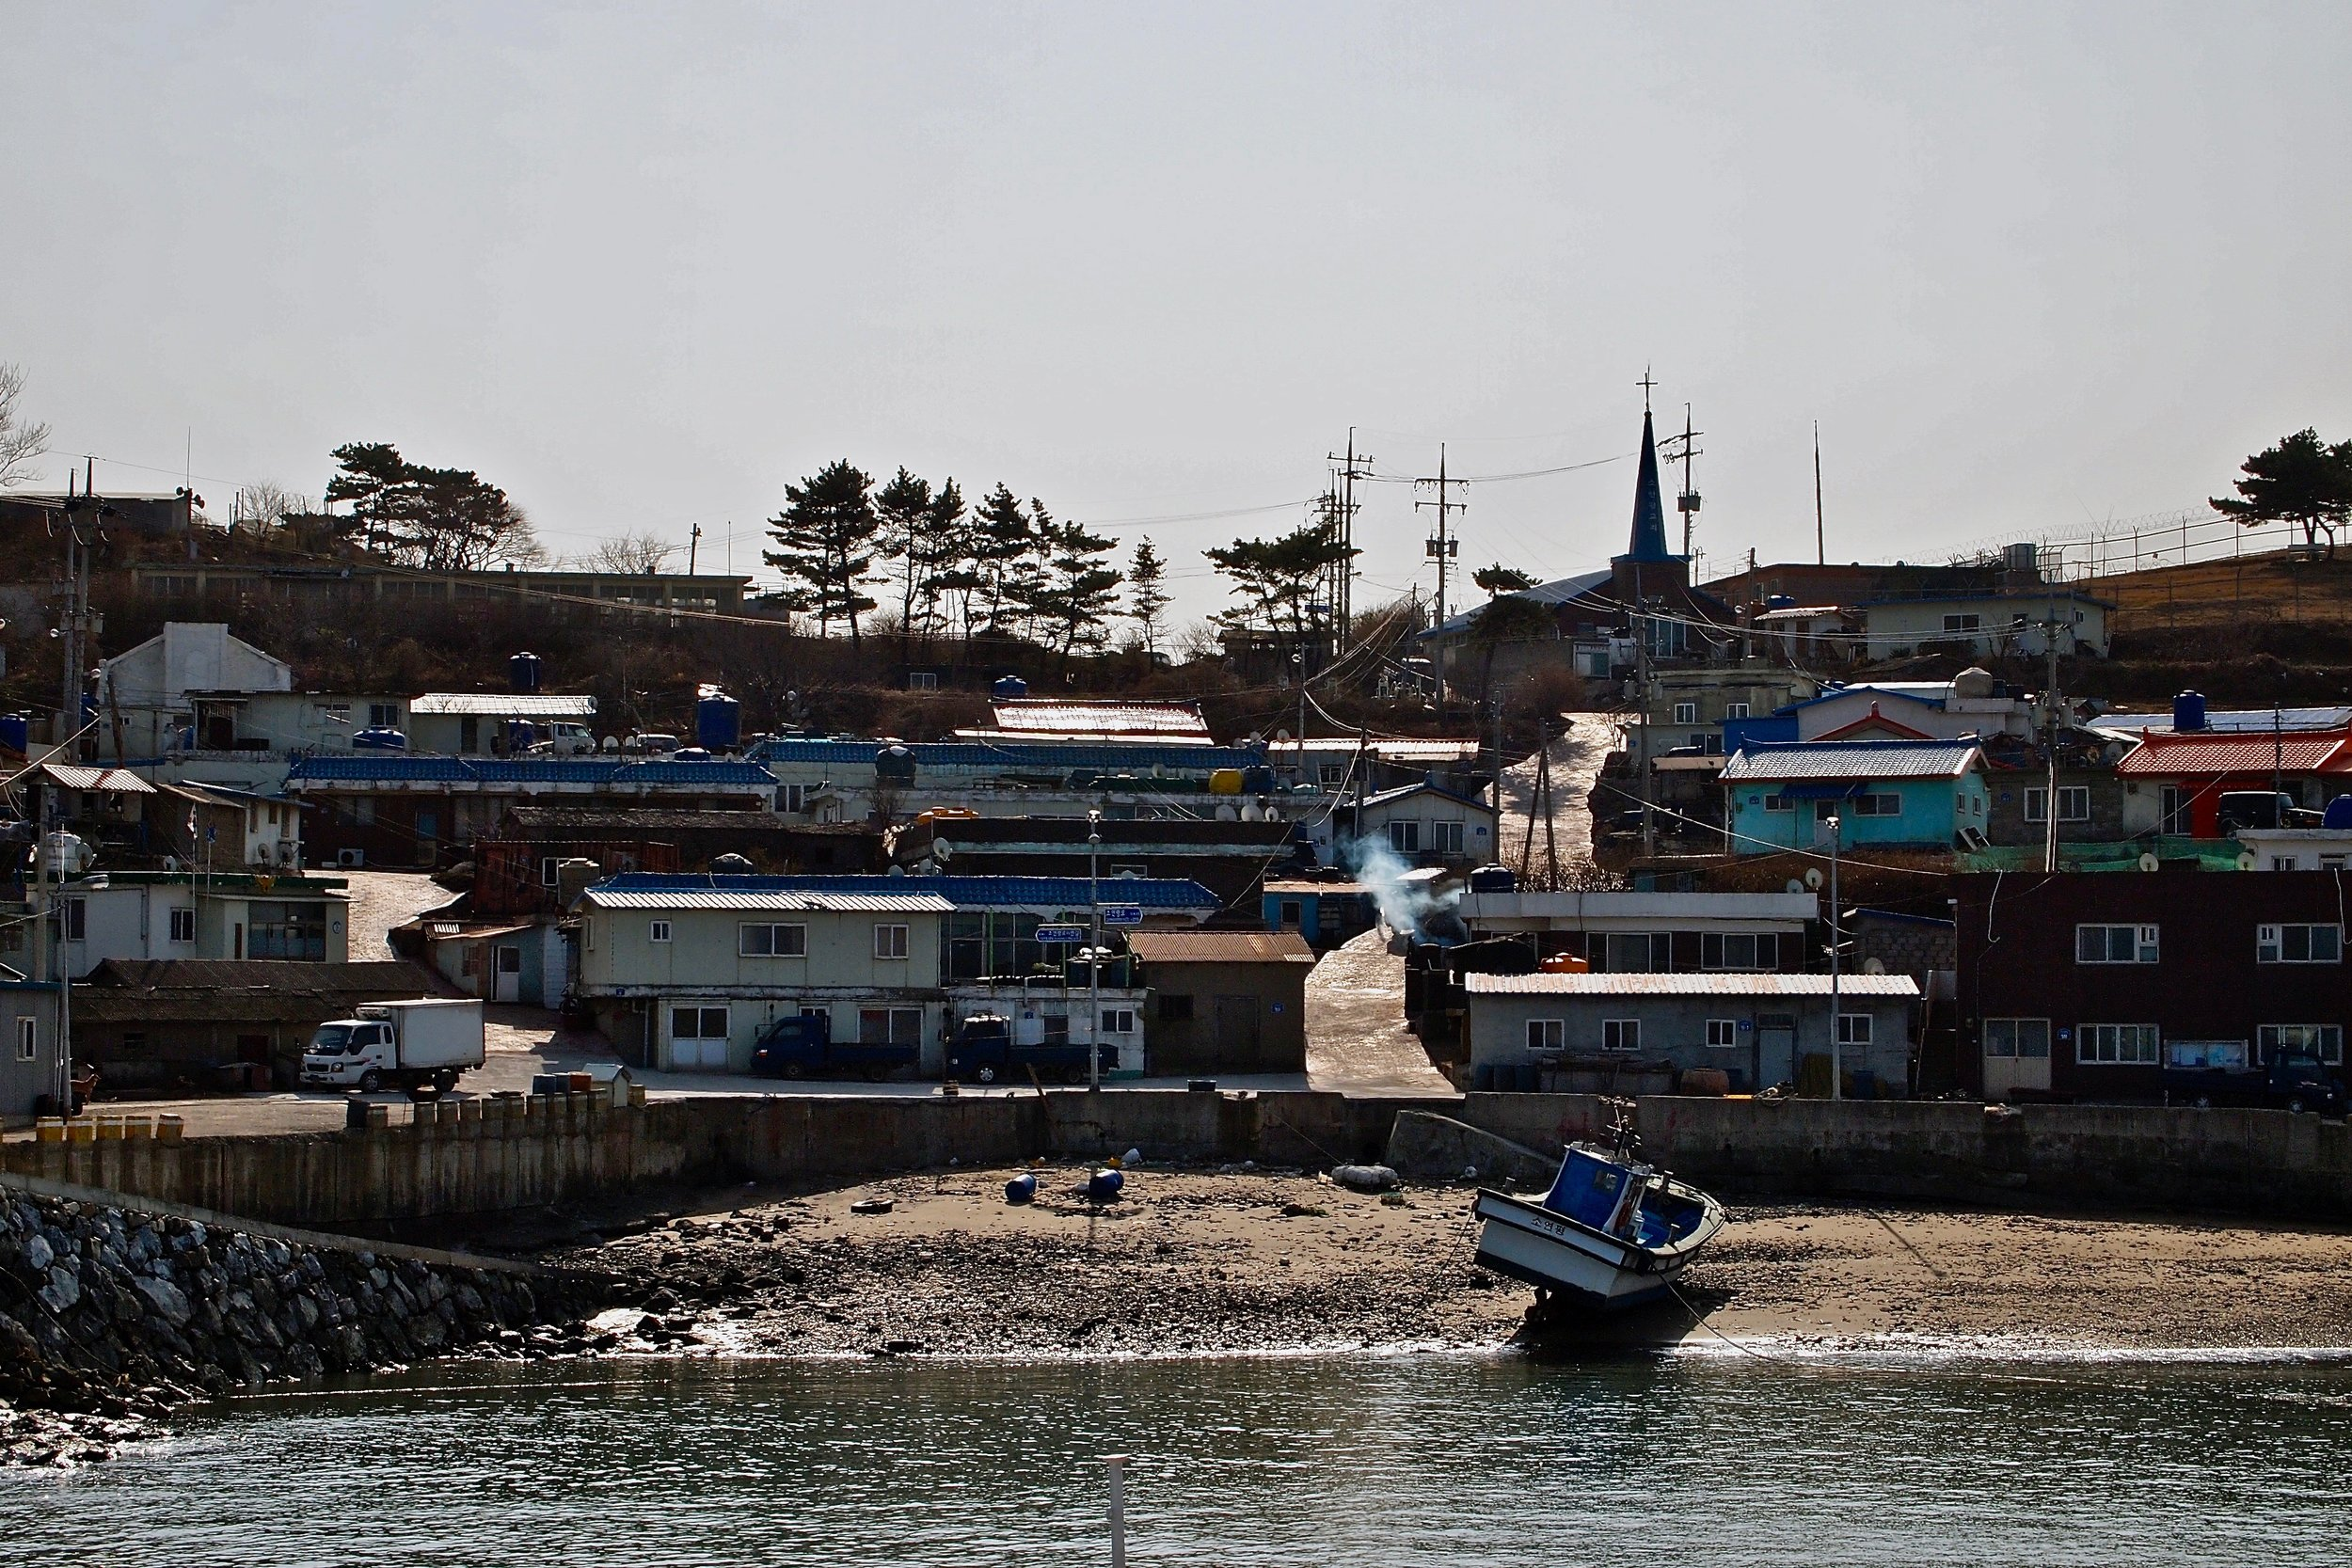 South Korea evacuated the 1400 residents of Yeonpyeong Island after it was hit by shelling from North Korea, killing four people. (C) Remko Tanis